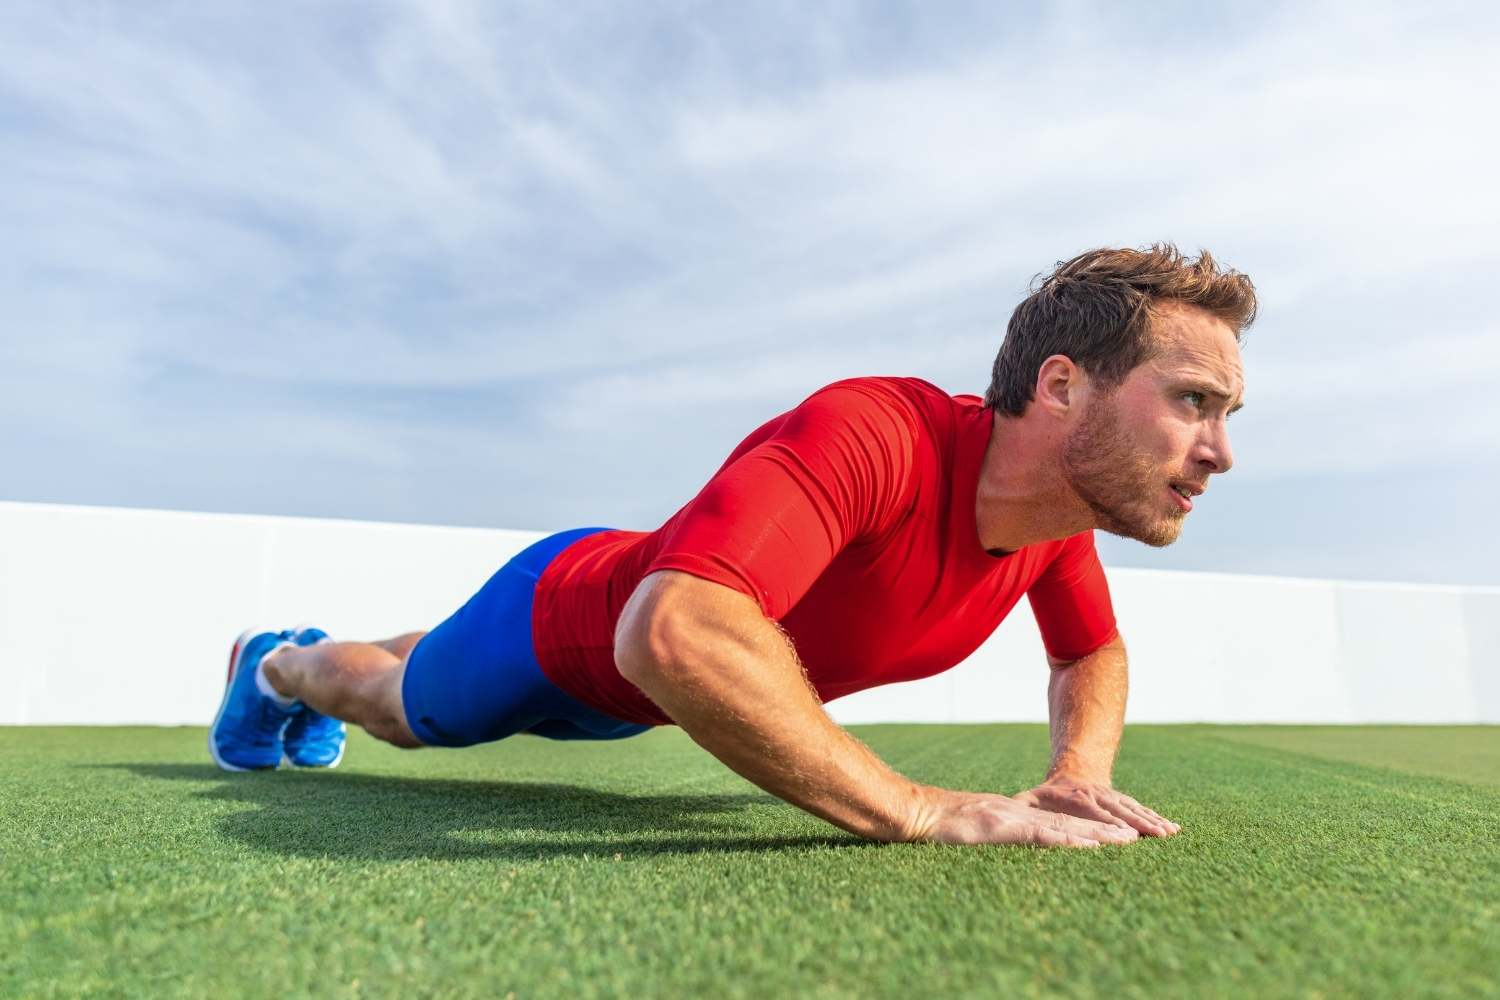 Is It Good To Do Push-Ups Every Day?